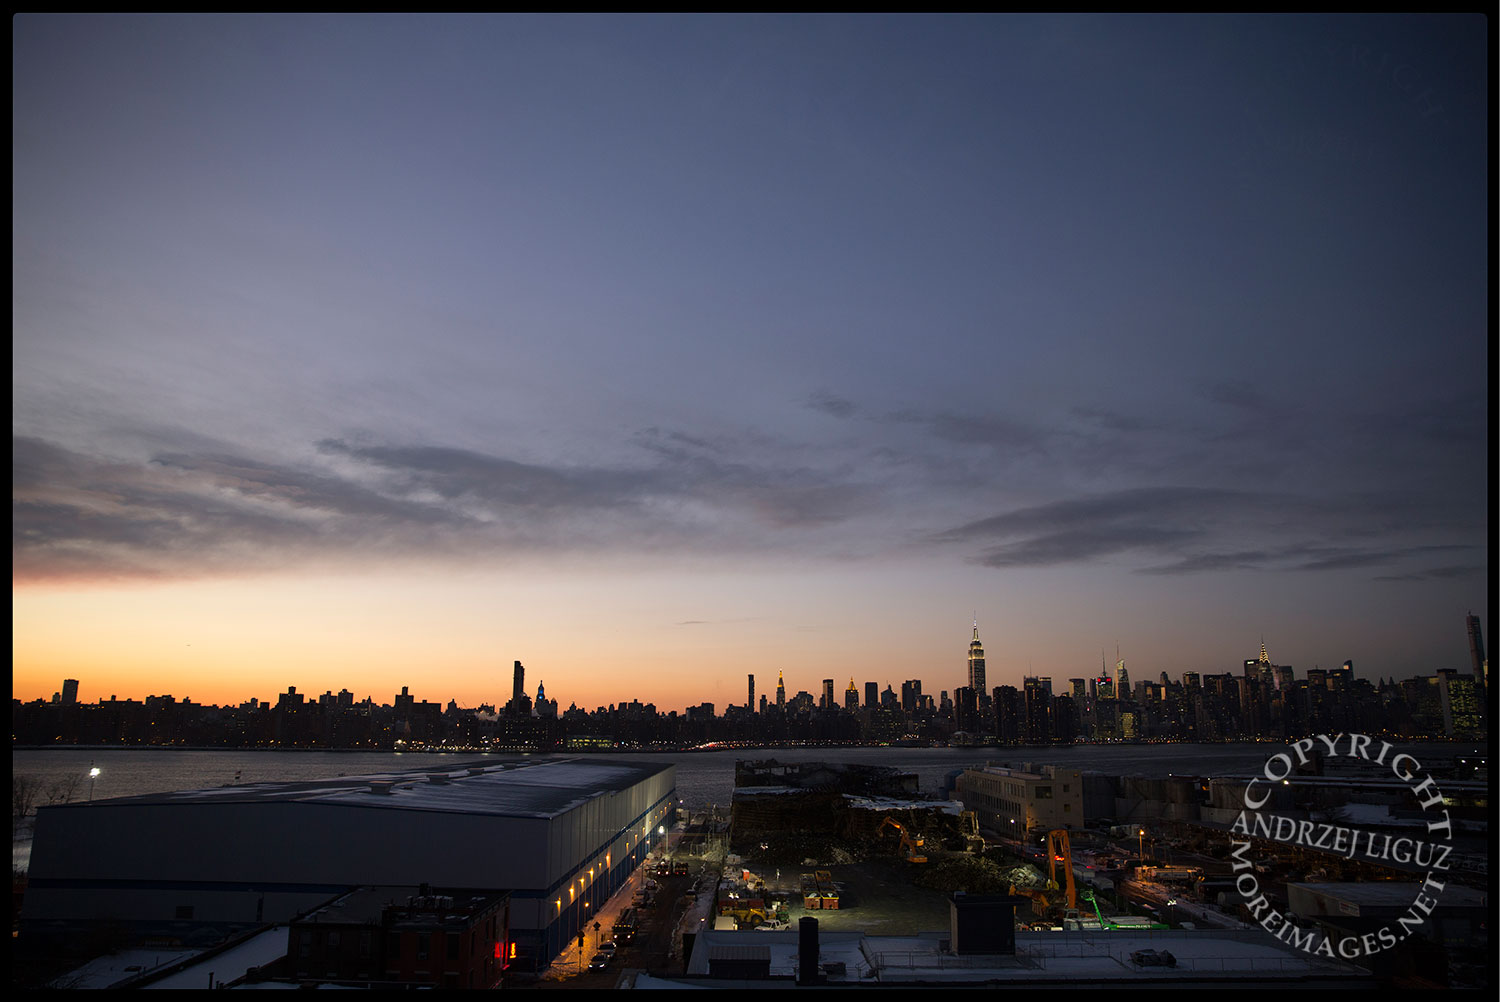 Manhattan from the Wythe Hotel in Brooklyn.